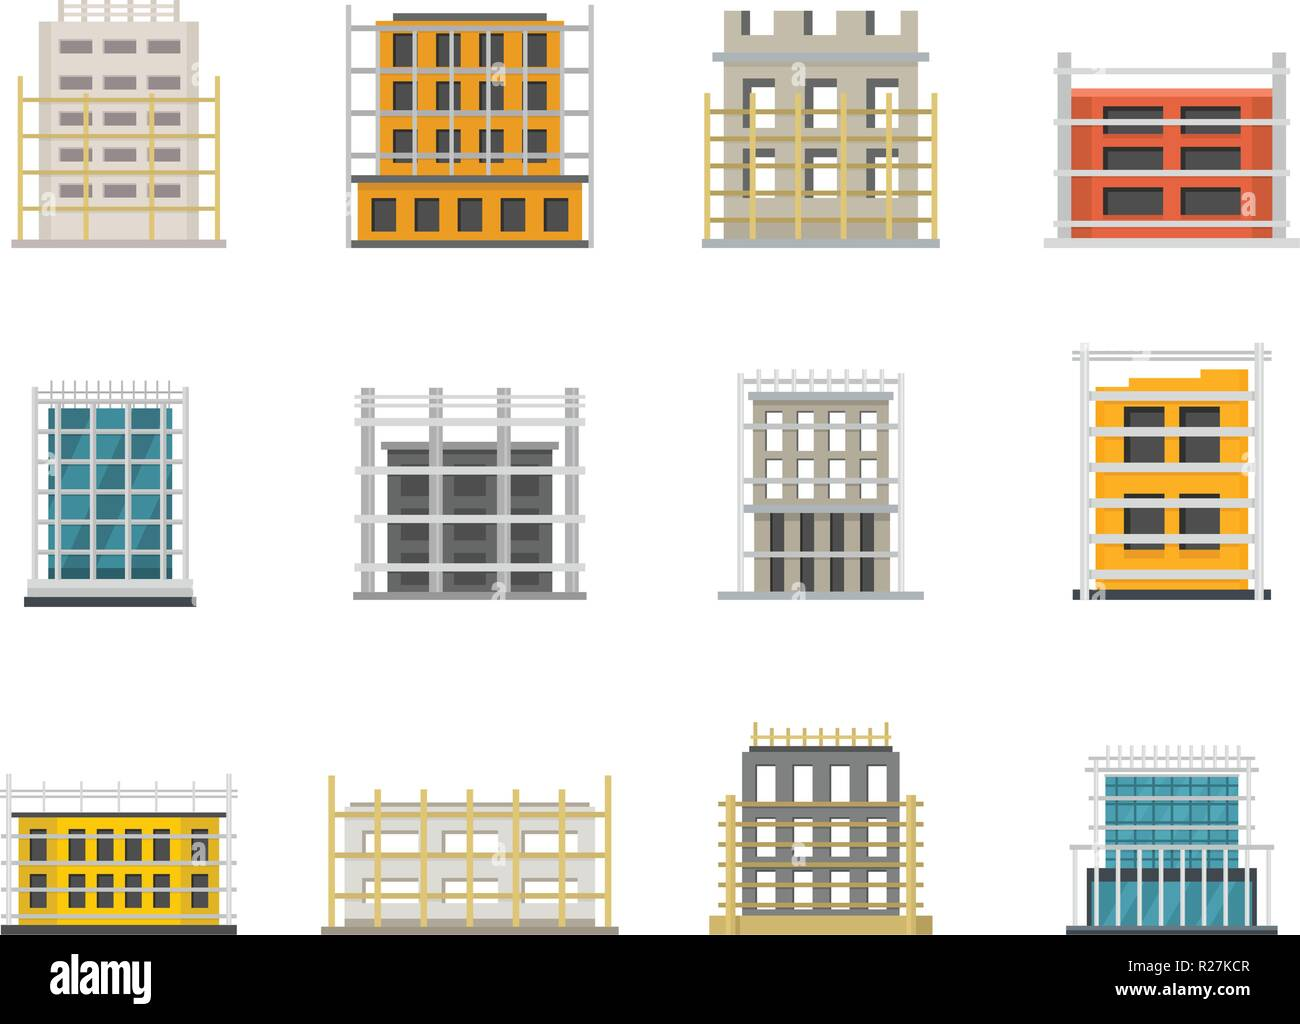 Scaffolding construction icons set. Flat illustration of 12 scaffolding construction icons for web - Stock Vector